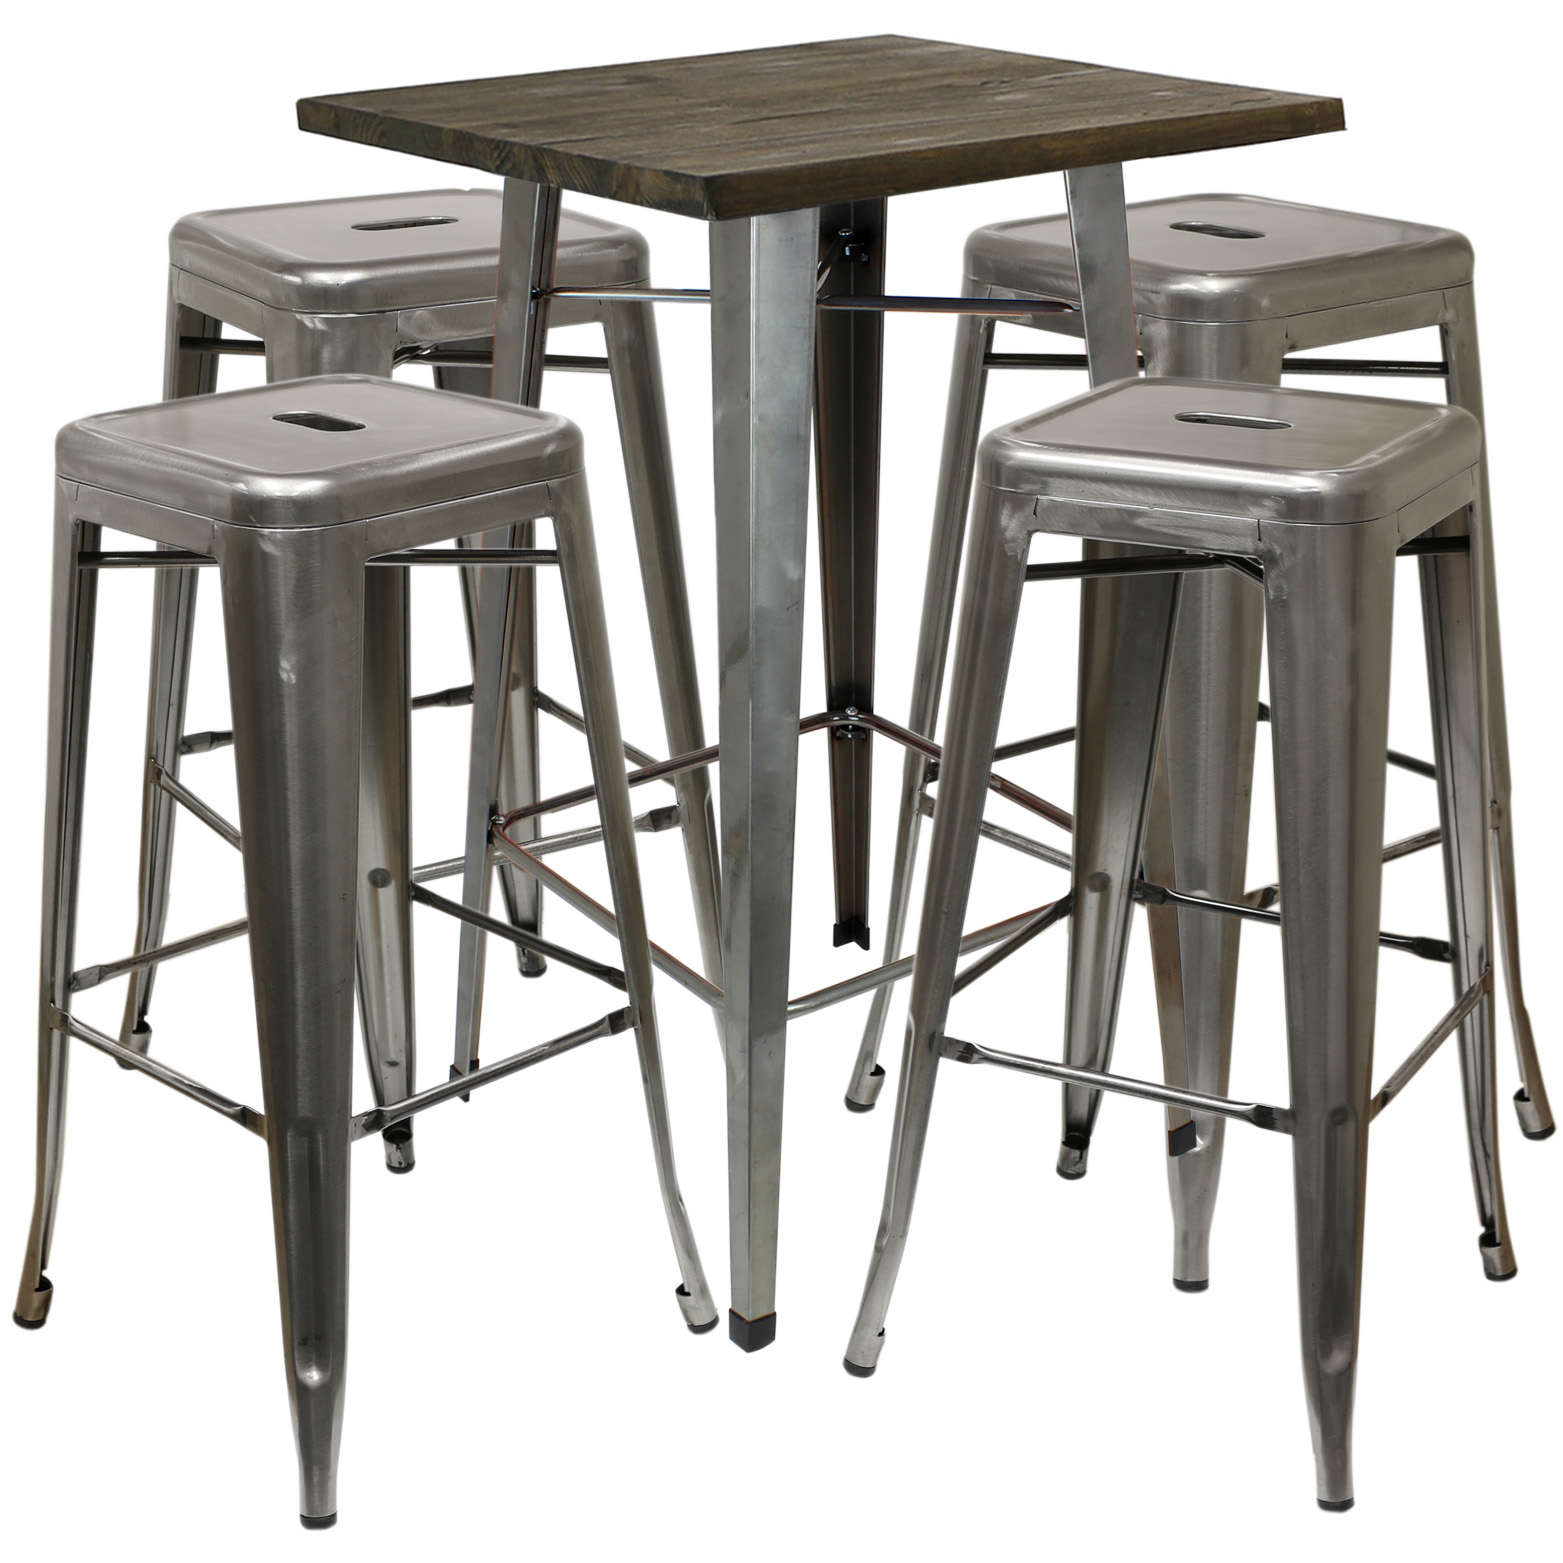 HARTLEYS WOOD TOP INDUSTRIAL SQUARE BISTRO TABLE  : gunmetal4 from www.ebay.co.uk size 1563 x 1563 jpeg 386kB